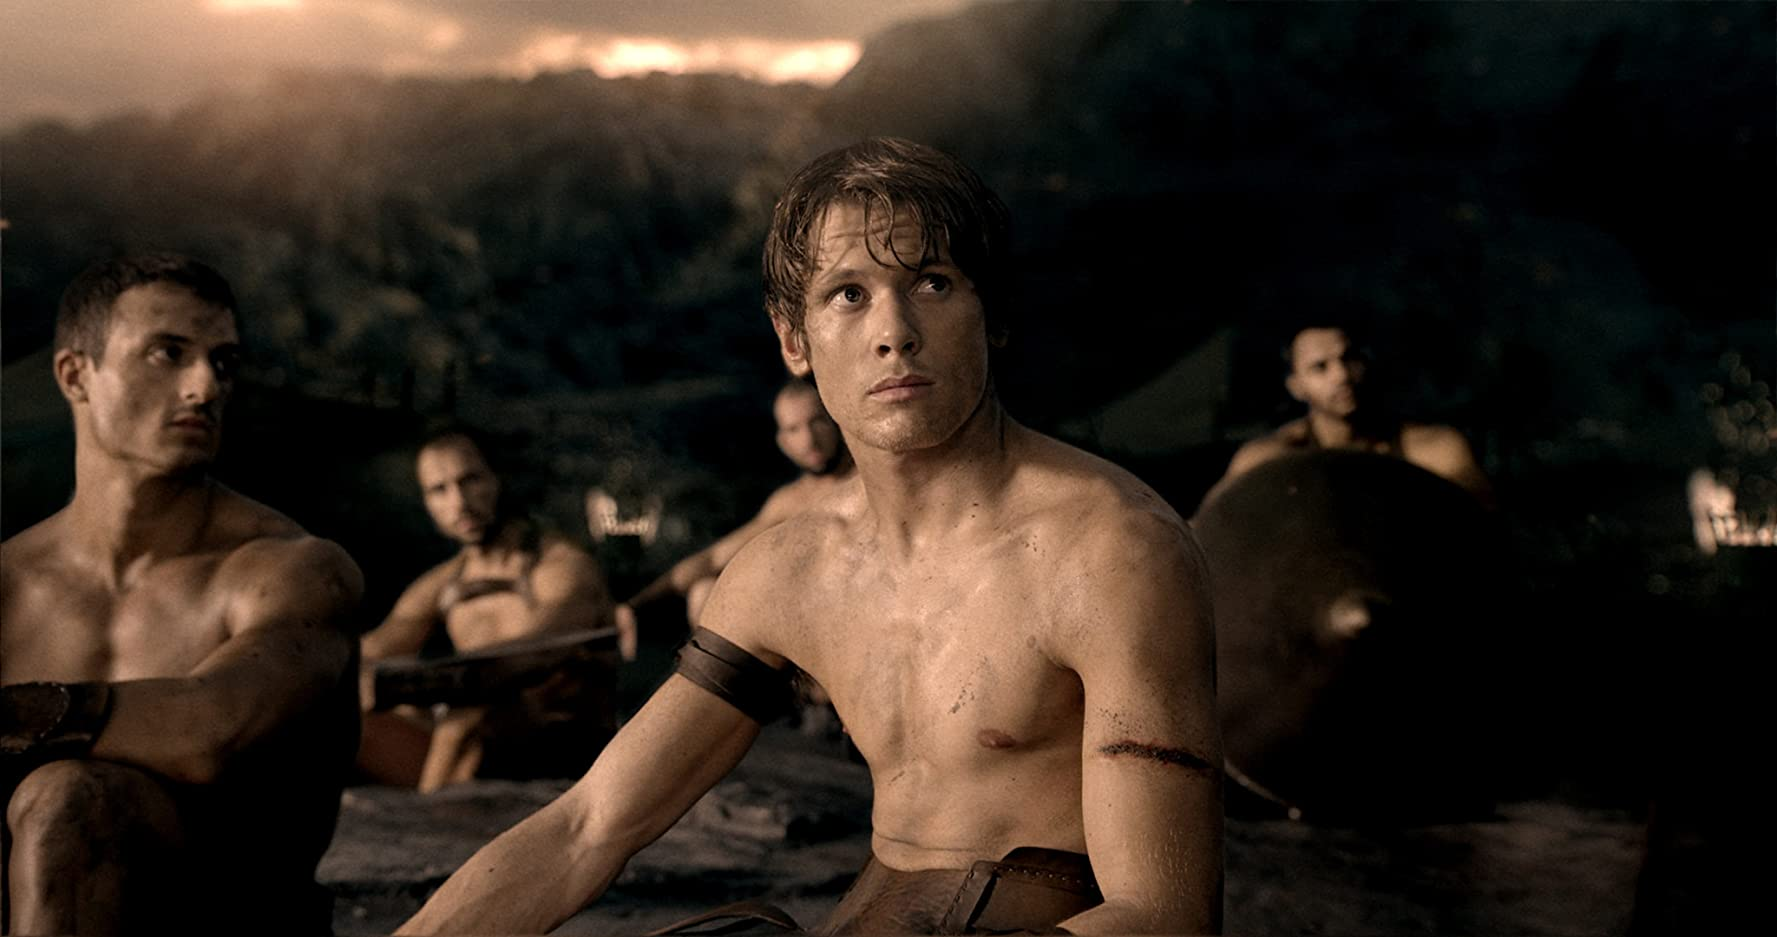 Jack O'Connell in 300: Rise of an Empire (2014)